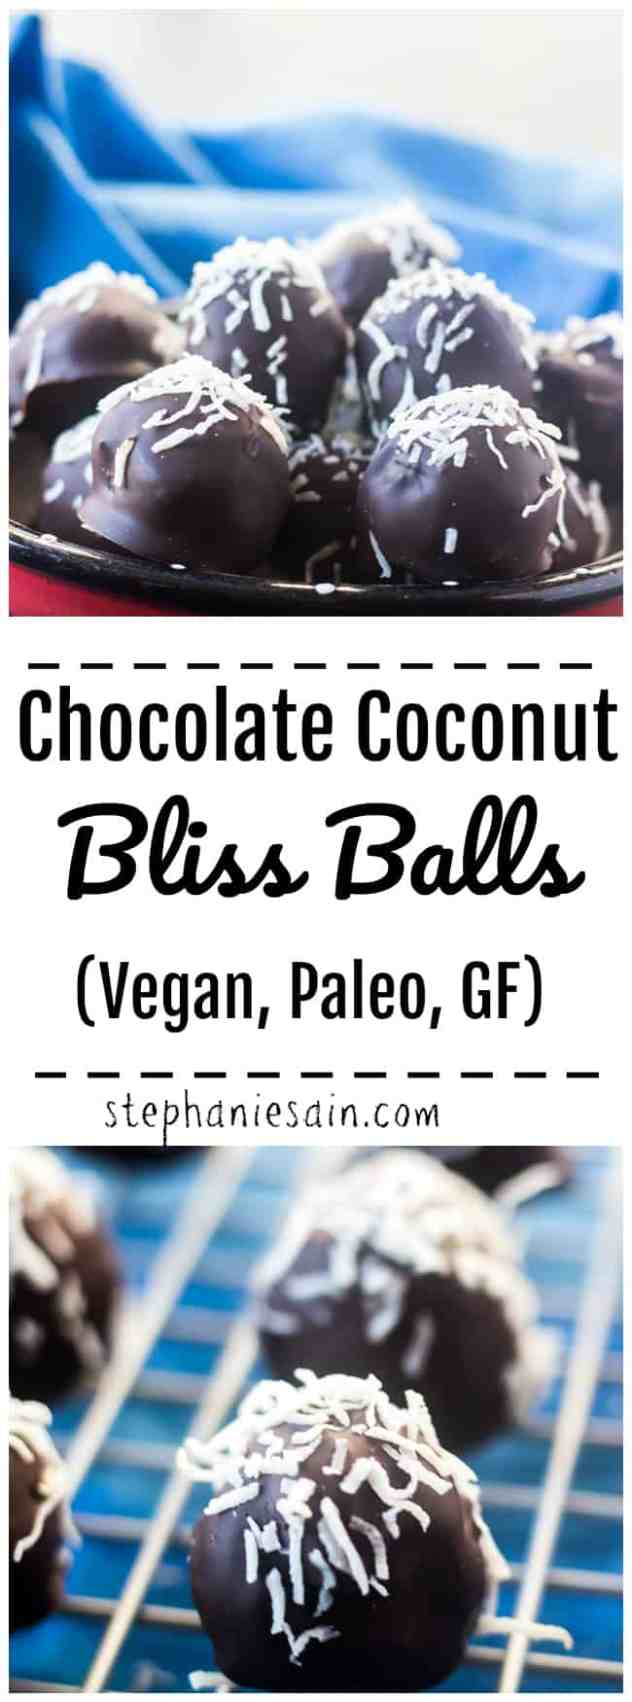 These Chocolate Coconut Balls are super easy to make, rich, decadent and tastes like a mounds candy bar only healthier. Great addition to the holidays or perfect for dessert and to satisfy a sweet tooth. Vegan, Paleo, GF.